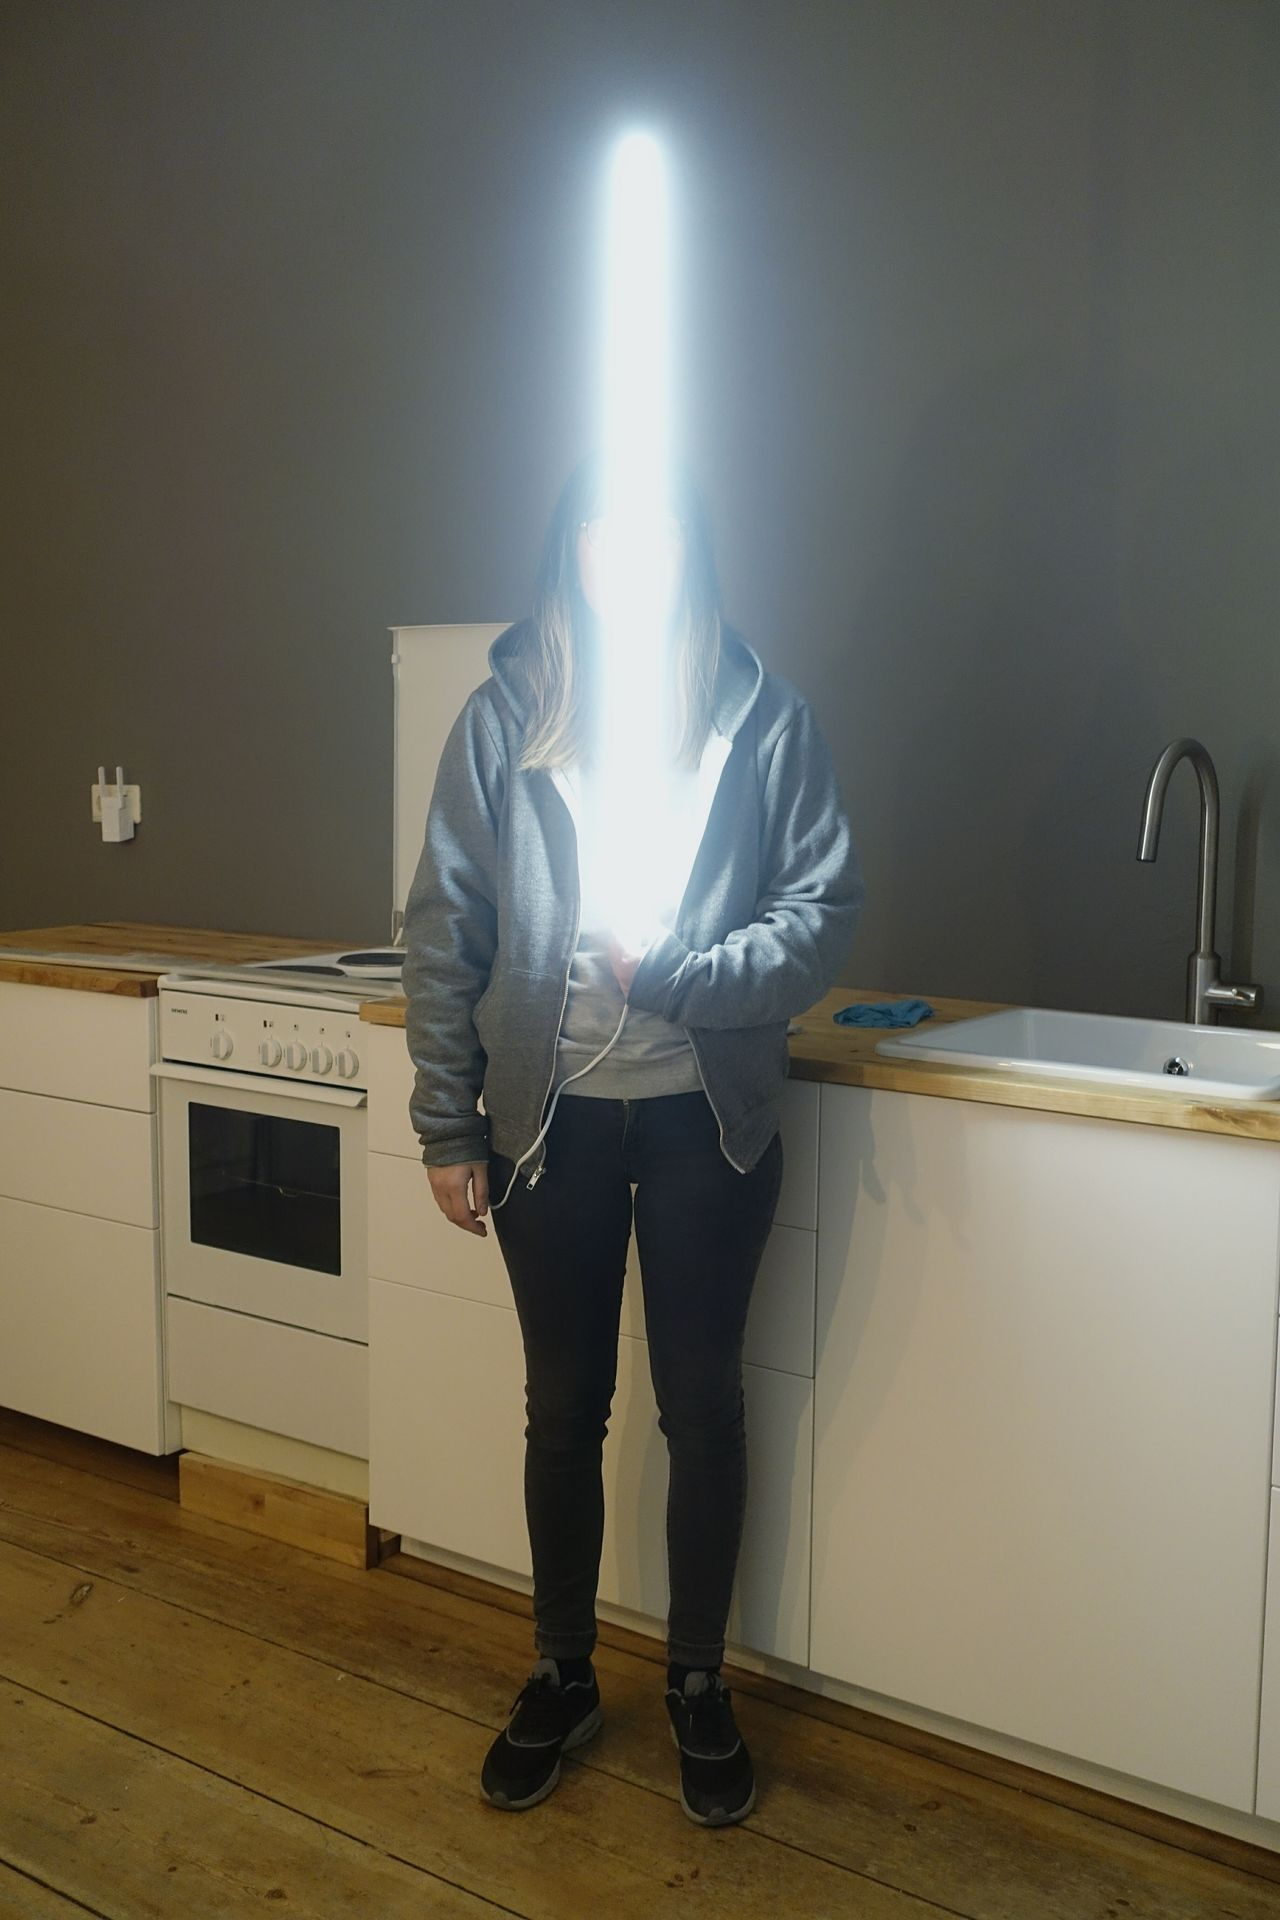 Lightsaber Girl Phantasy Fantasy Photography Starwars StarWars Collection Female Woman Playing Cosplay Hanging Out Check This Out Light The Force The Force Is Stong In This One Kitchen Room Play Showcase March Urban Myfavoriteplace People And Places Uniqueness Women Around The World